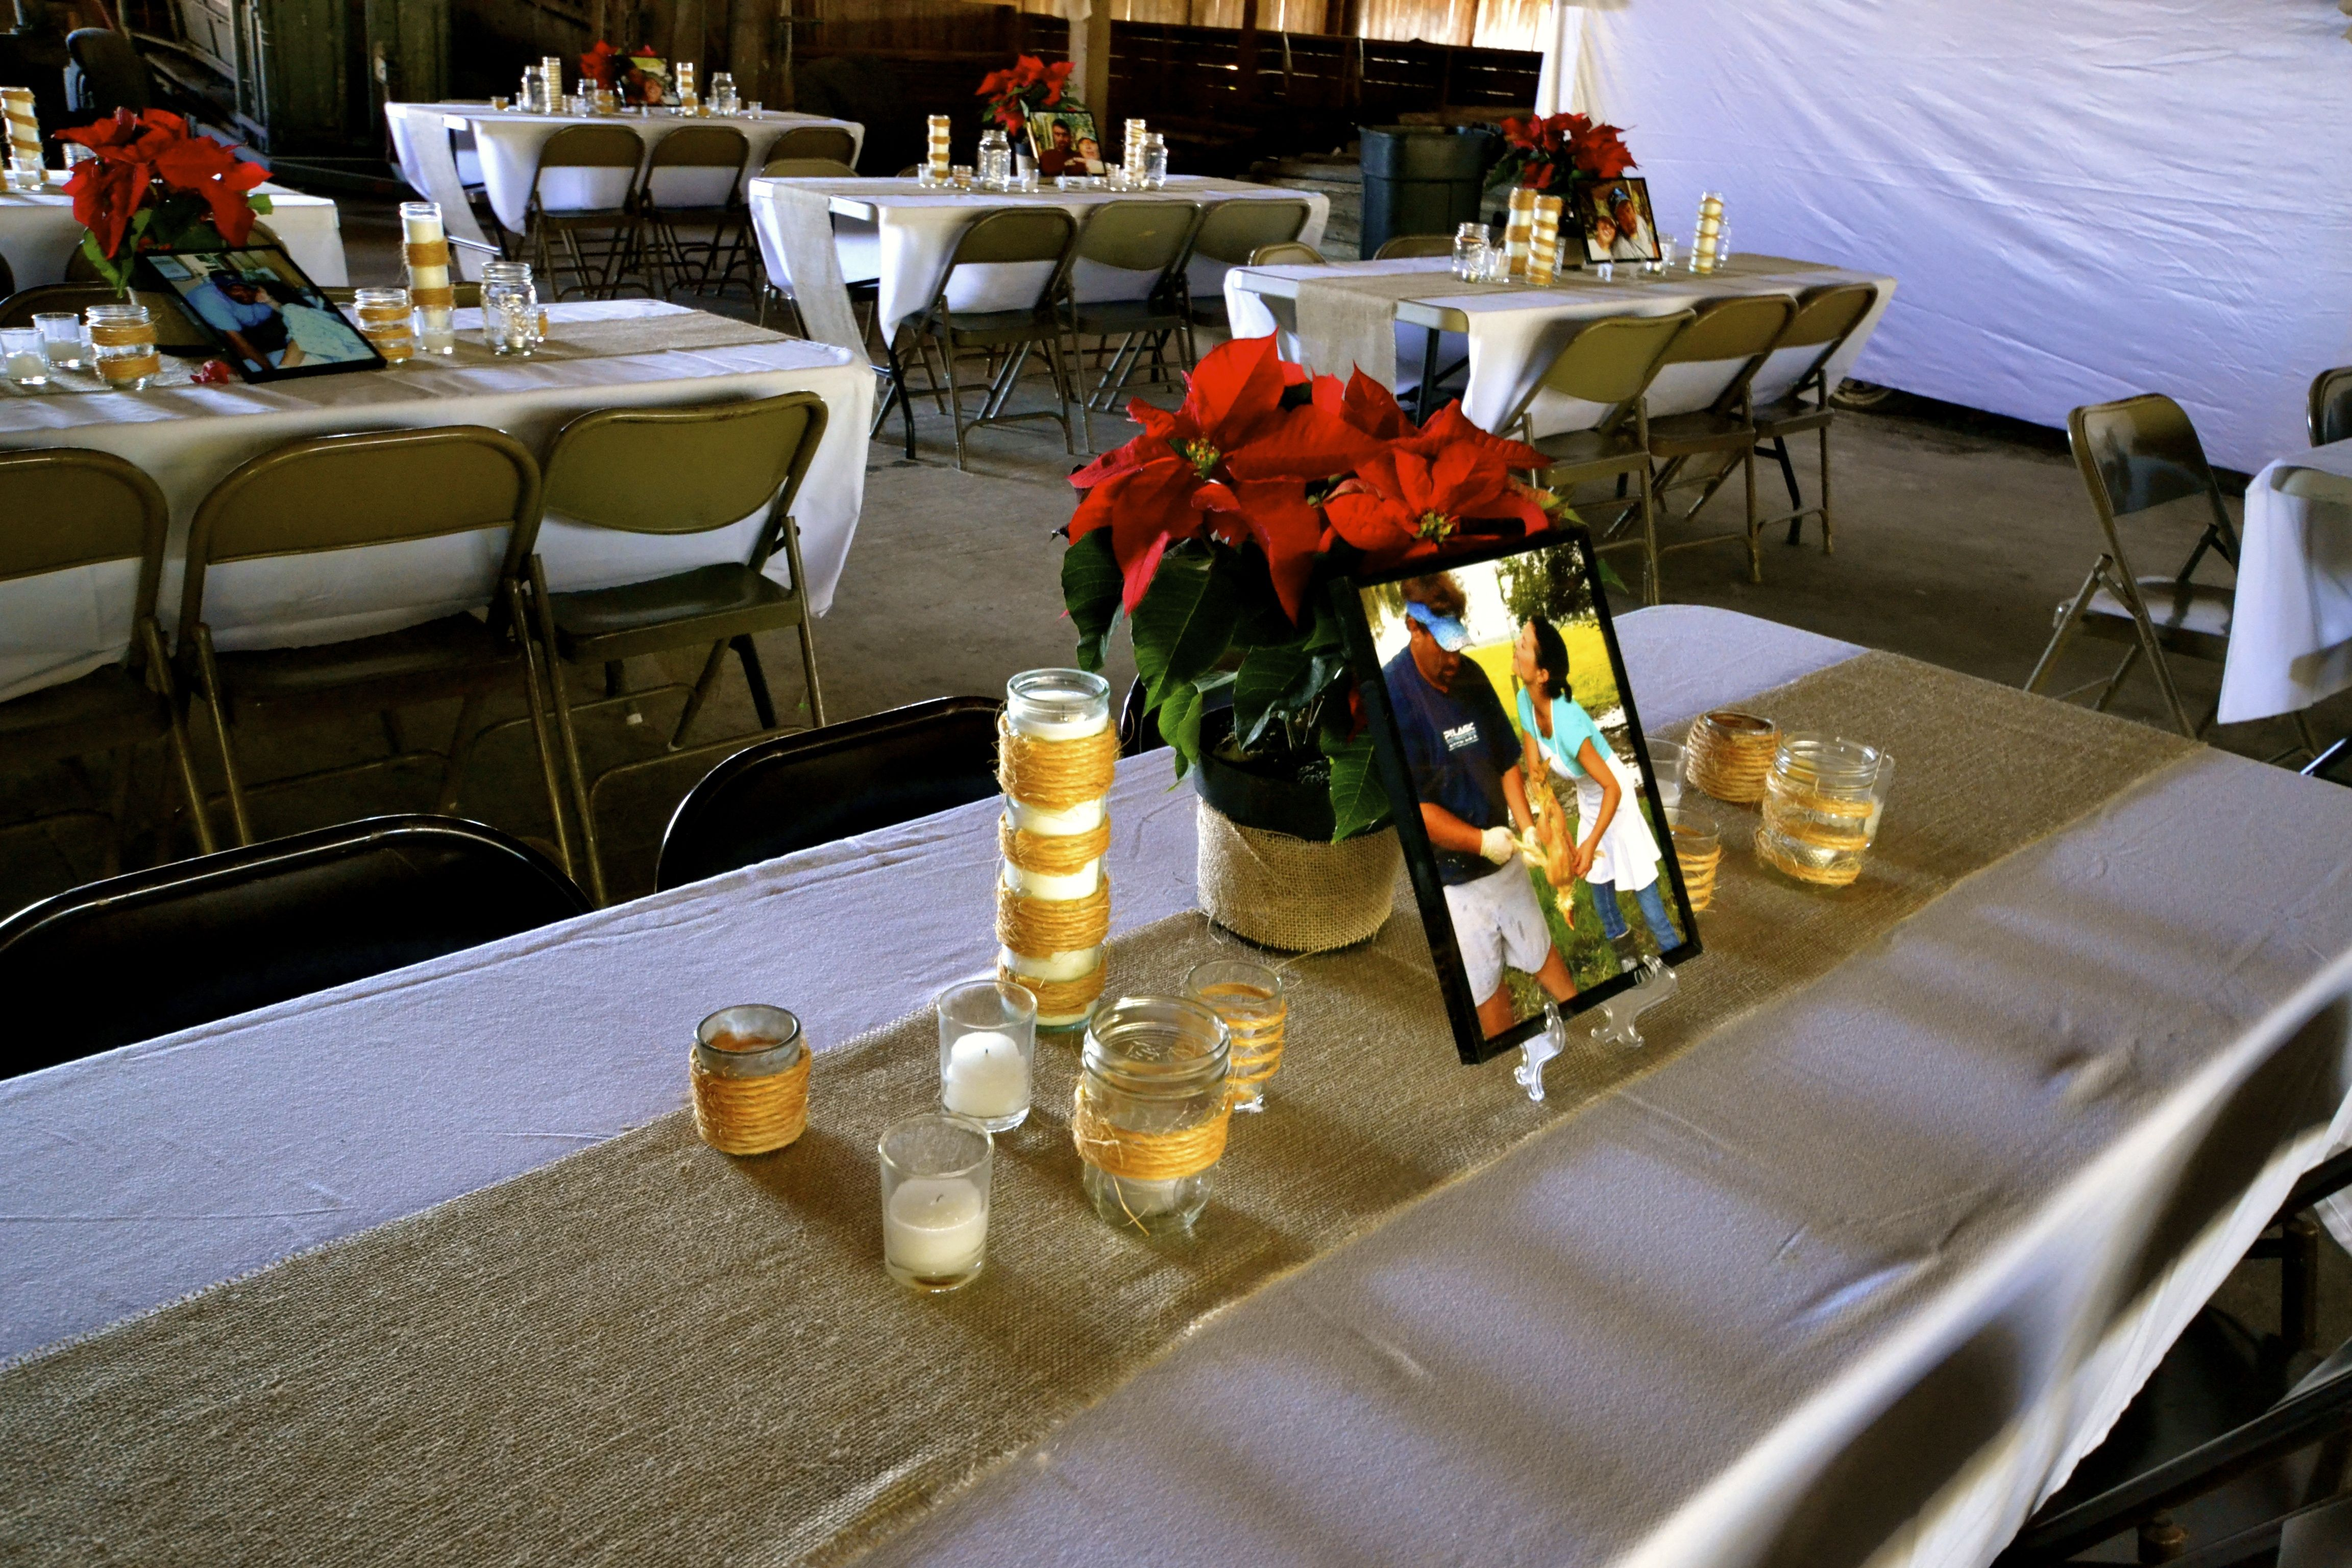 I Used Plain White Table Clothes U0026 Burlap Runners. (I Ordered A 12 In X 100  Yd Roll Of Burlap U0026 Used It For Everything From The Table Runners To Bows  That ...